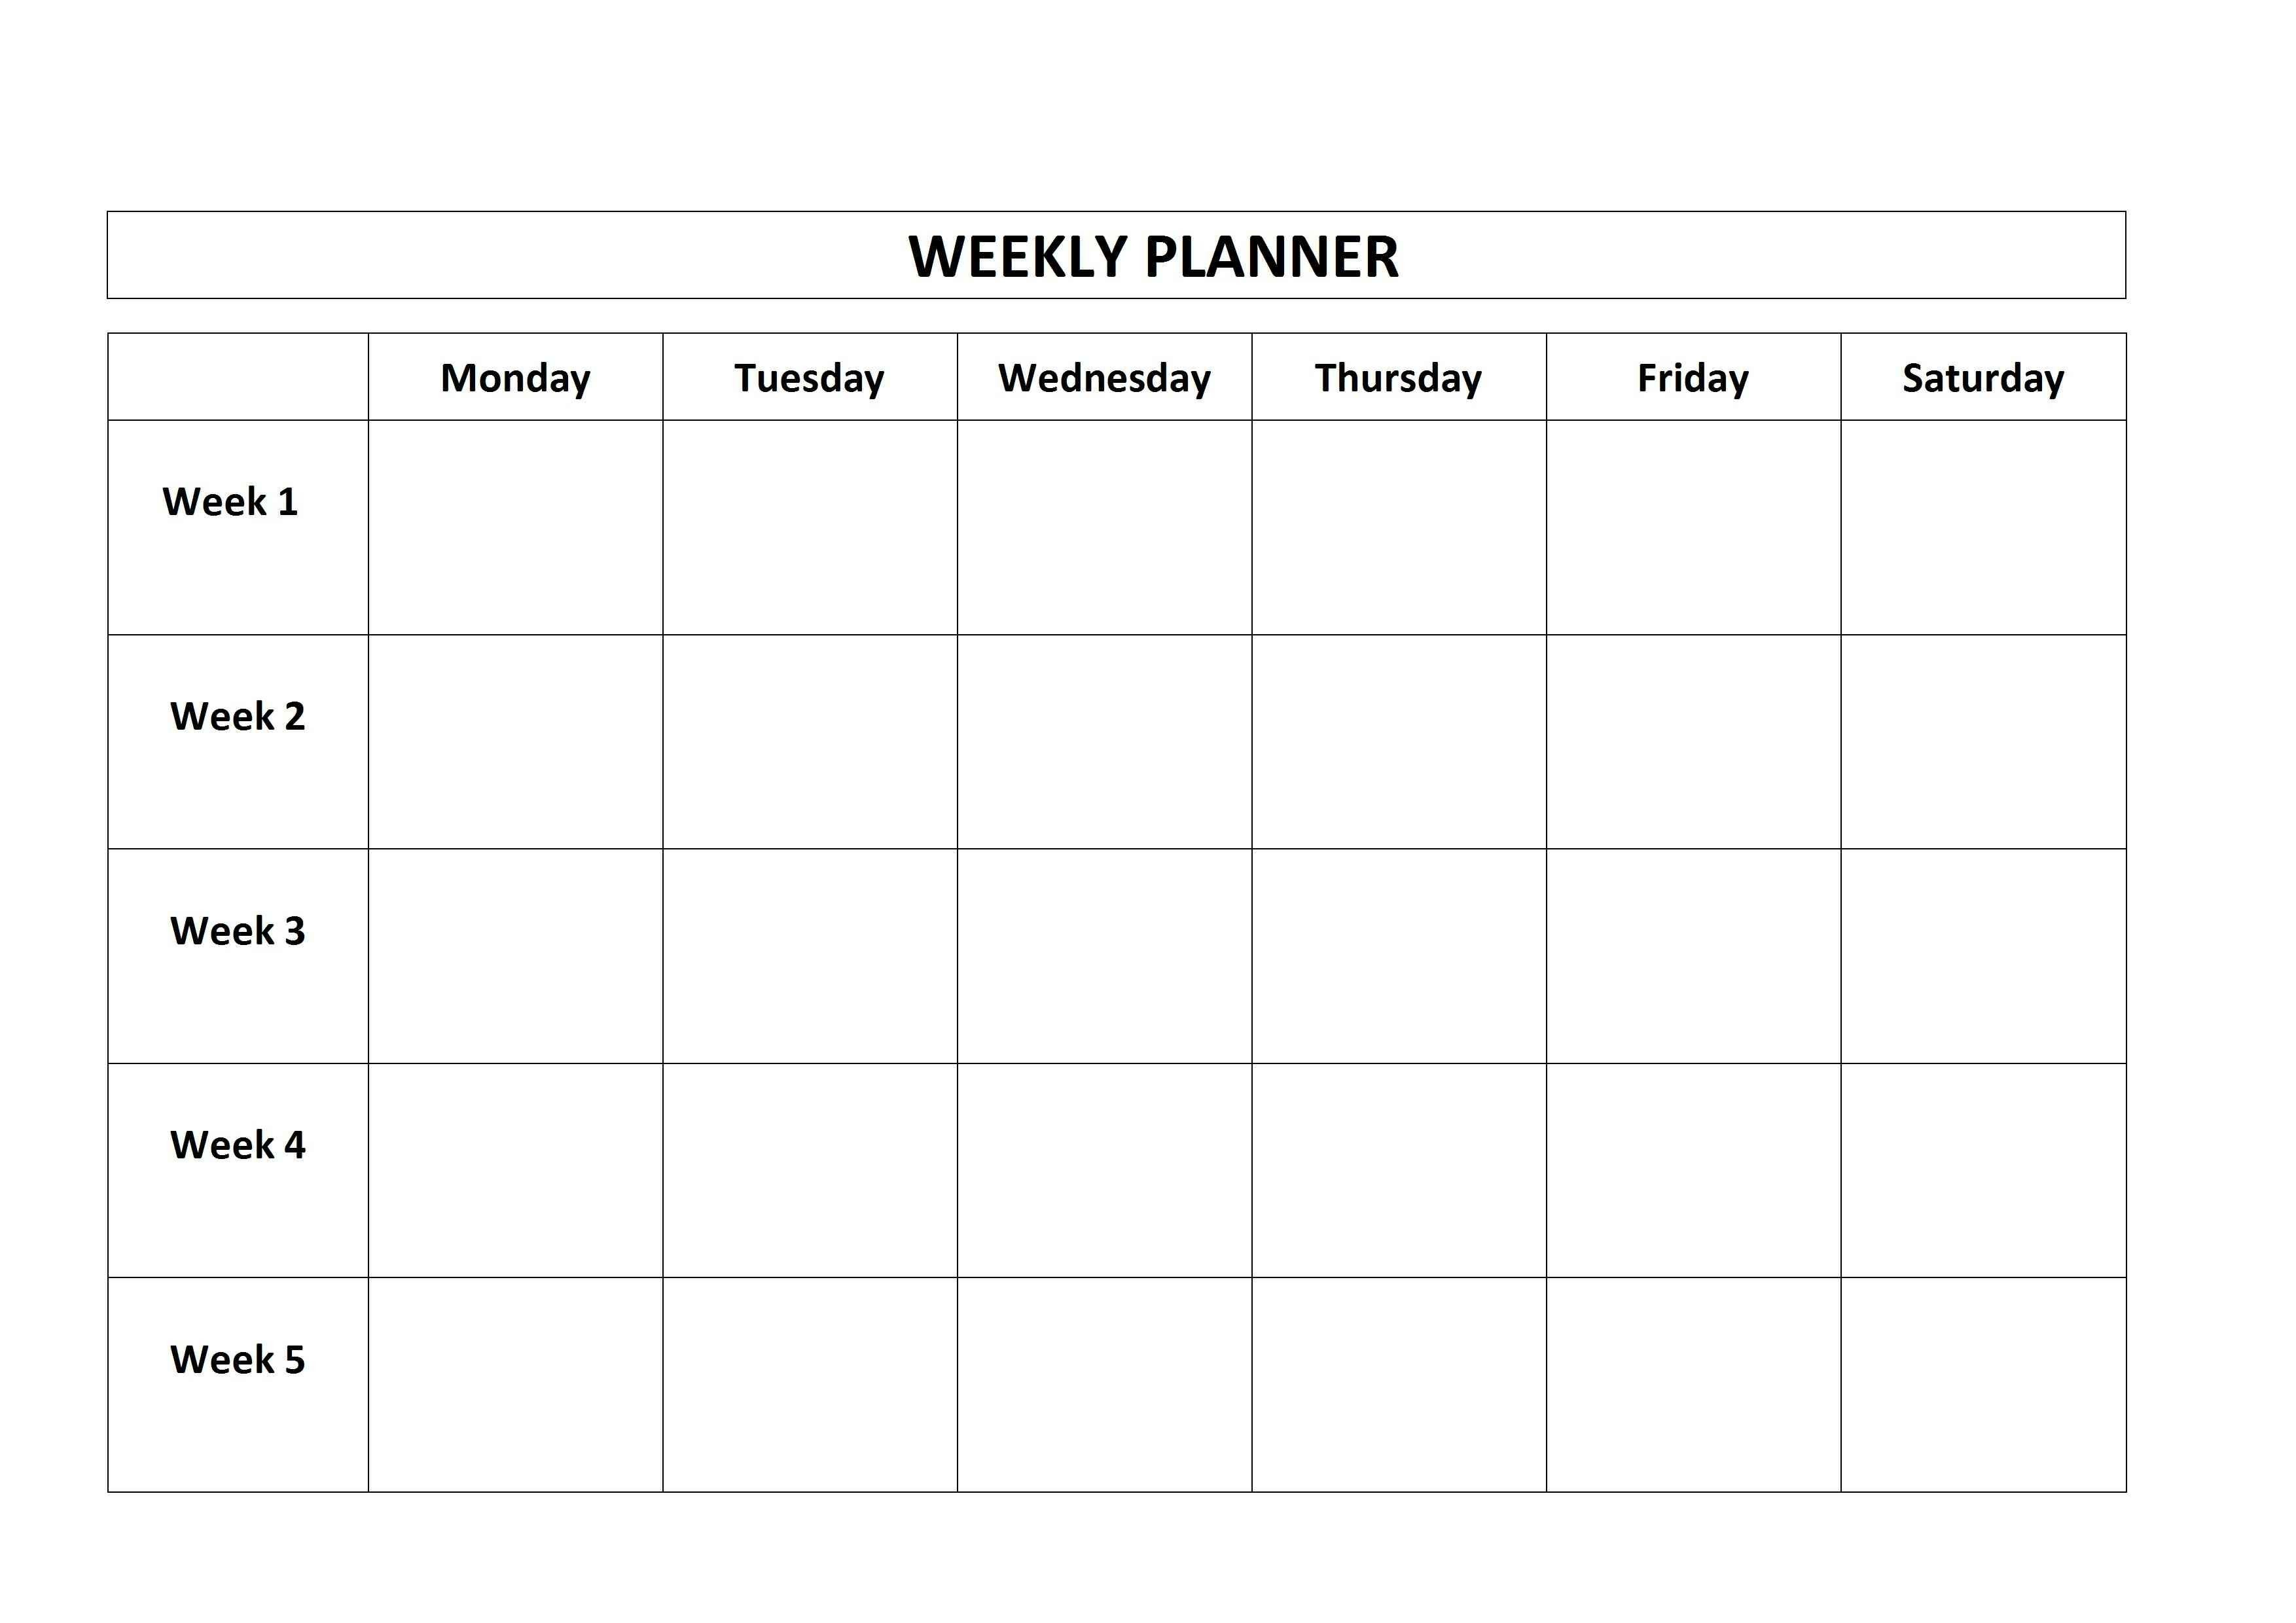 5 Day Calendar Template  Vaydile.euforic.coblank Calendar inside 5 Day Weekly Planner Template